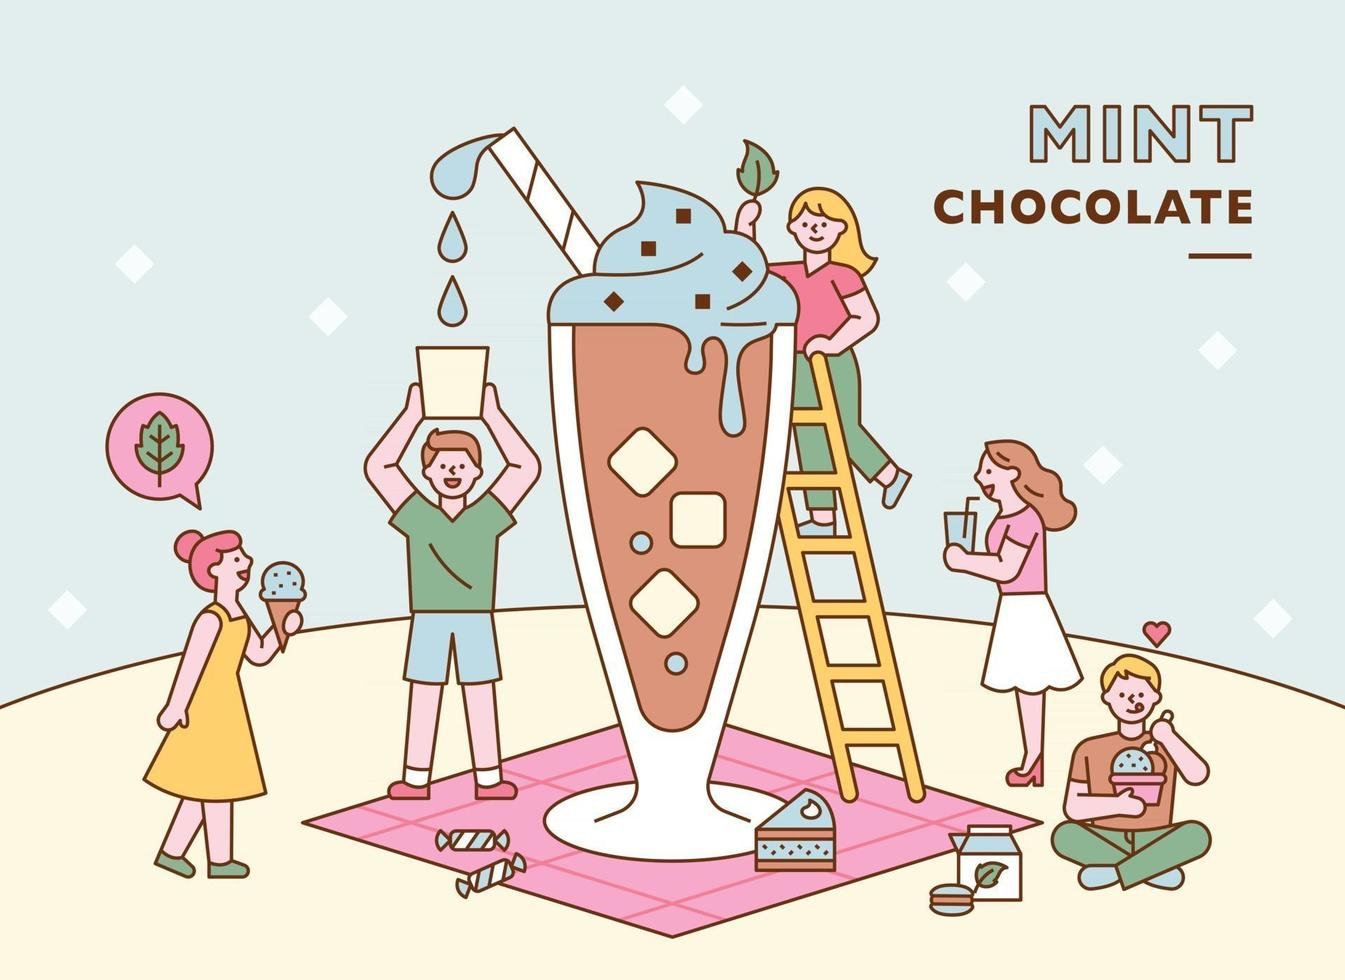 People are making a giant mint chocolate drink together. flat design style minimal vector illustration.